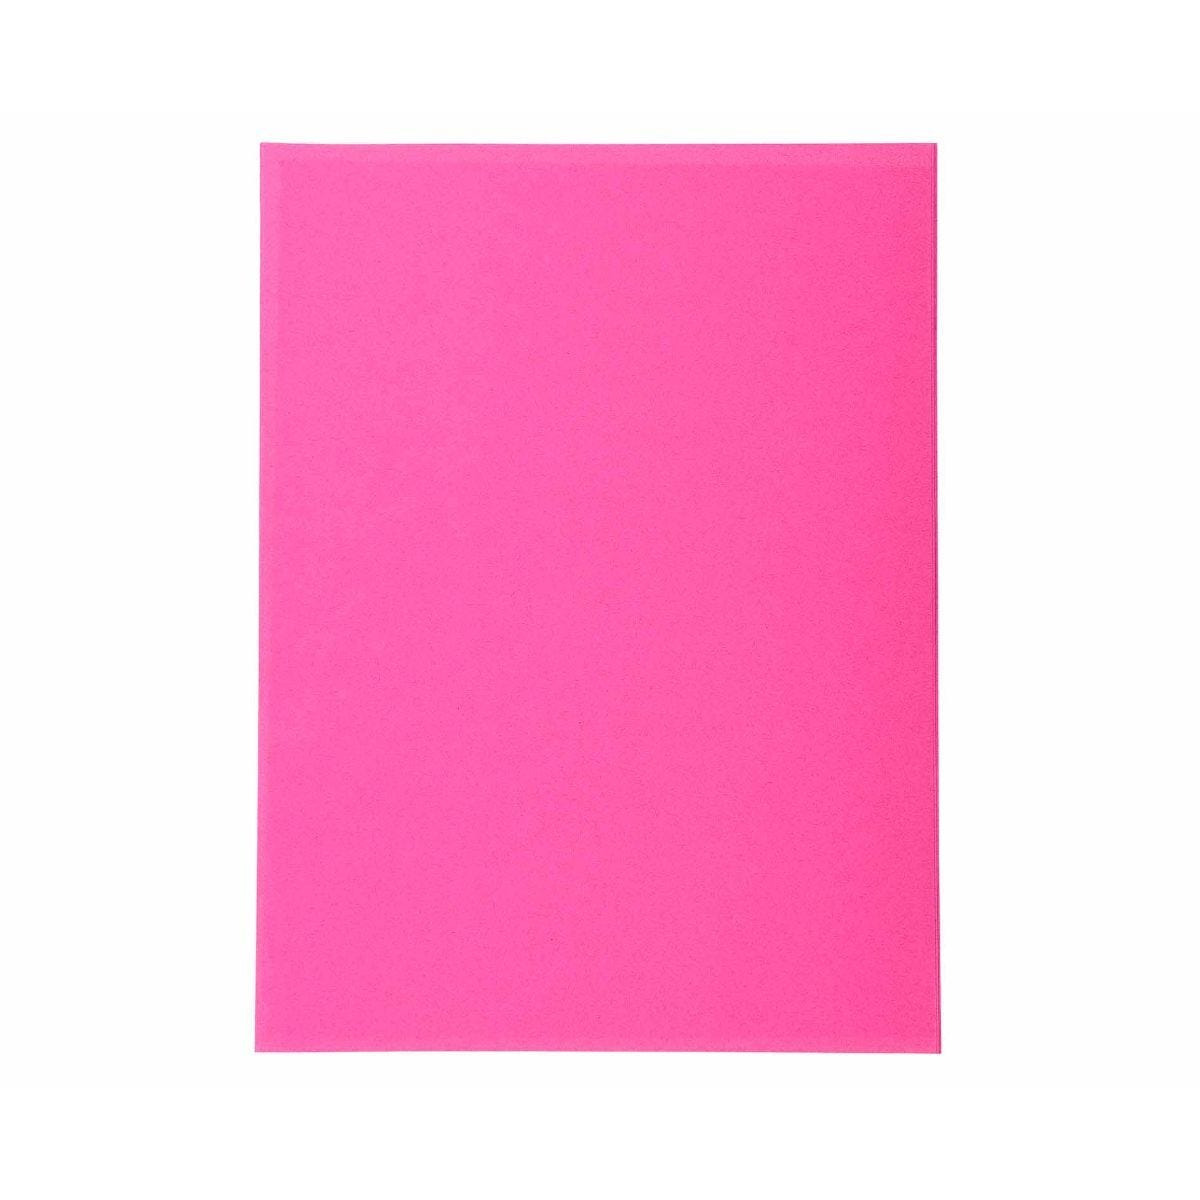 Exacompta Forever Folders Square Cut A4 5 Packs of 100 Fuchsia